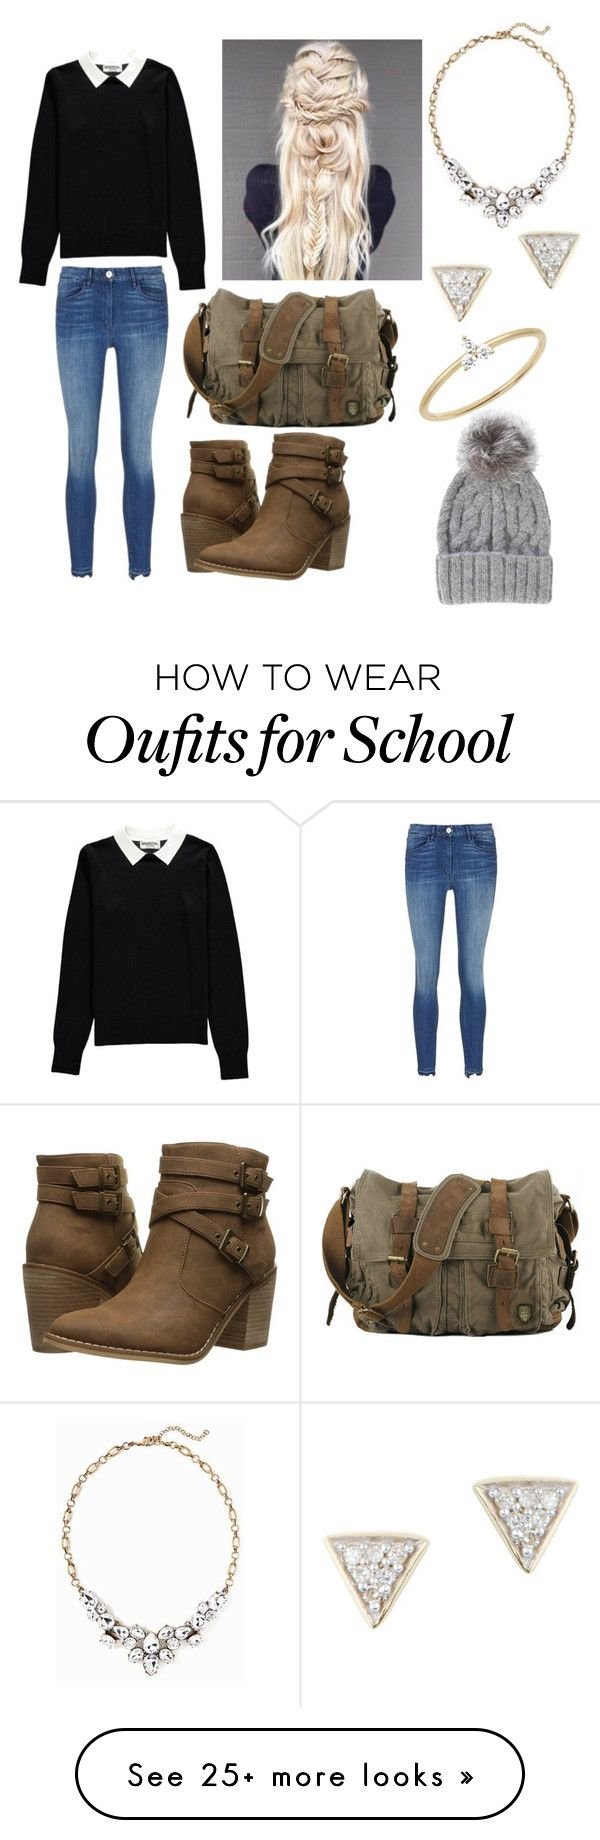 """""""Untitled #25"""" by haleyhoward6574 on Polyvore featuring Essentiel, Rocket Dog, Old Navy, Adina Reyter, EF Collection and Eugenia Kim"""